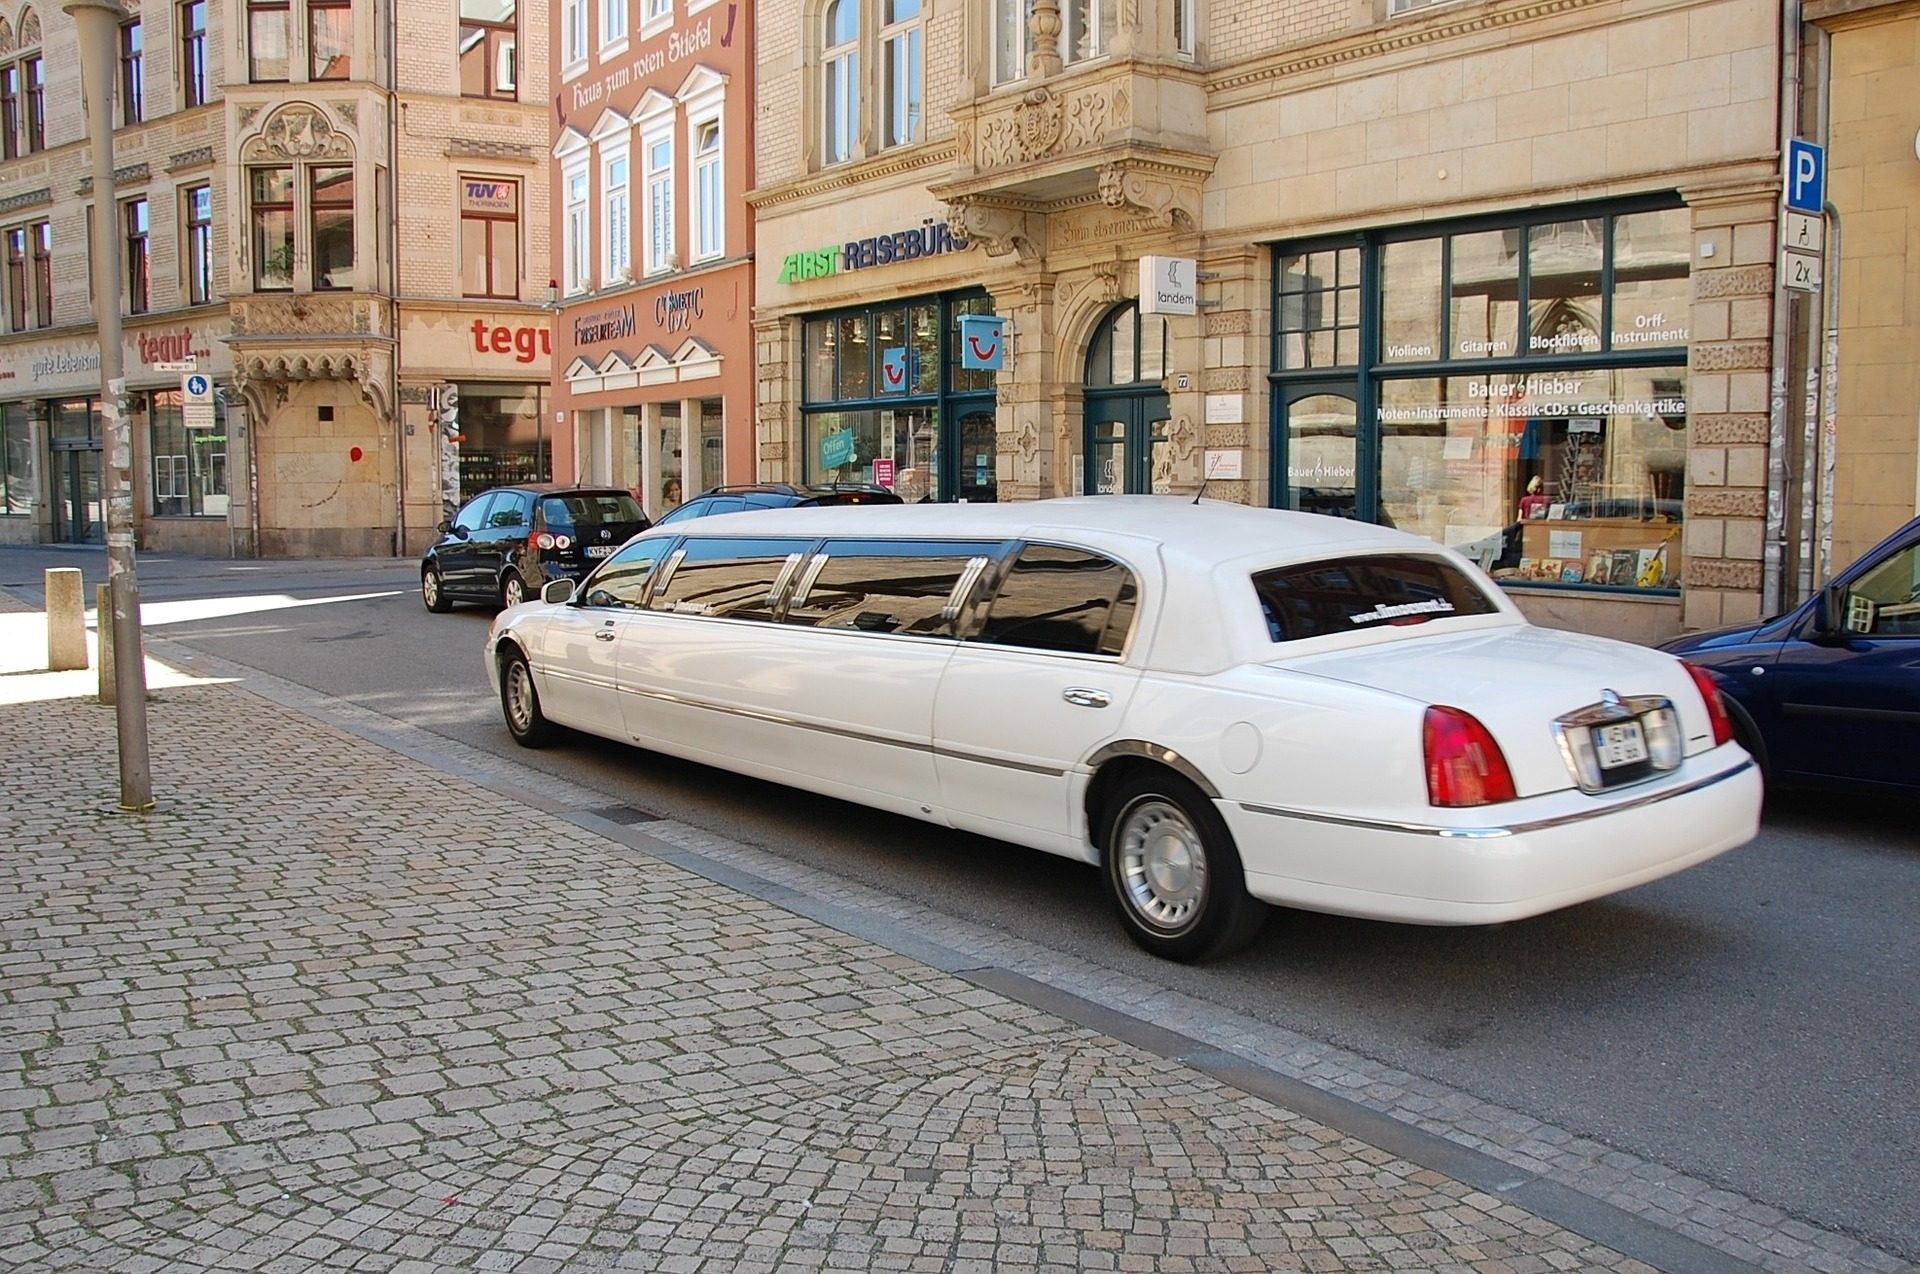 What You Should Know About Hiring a Limousine Rental